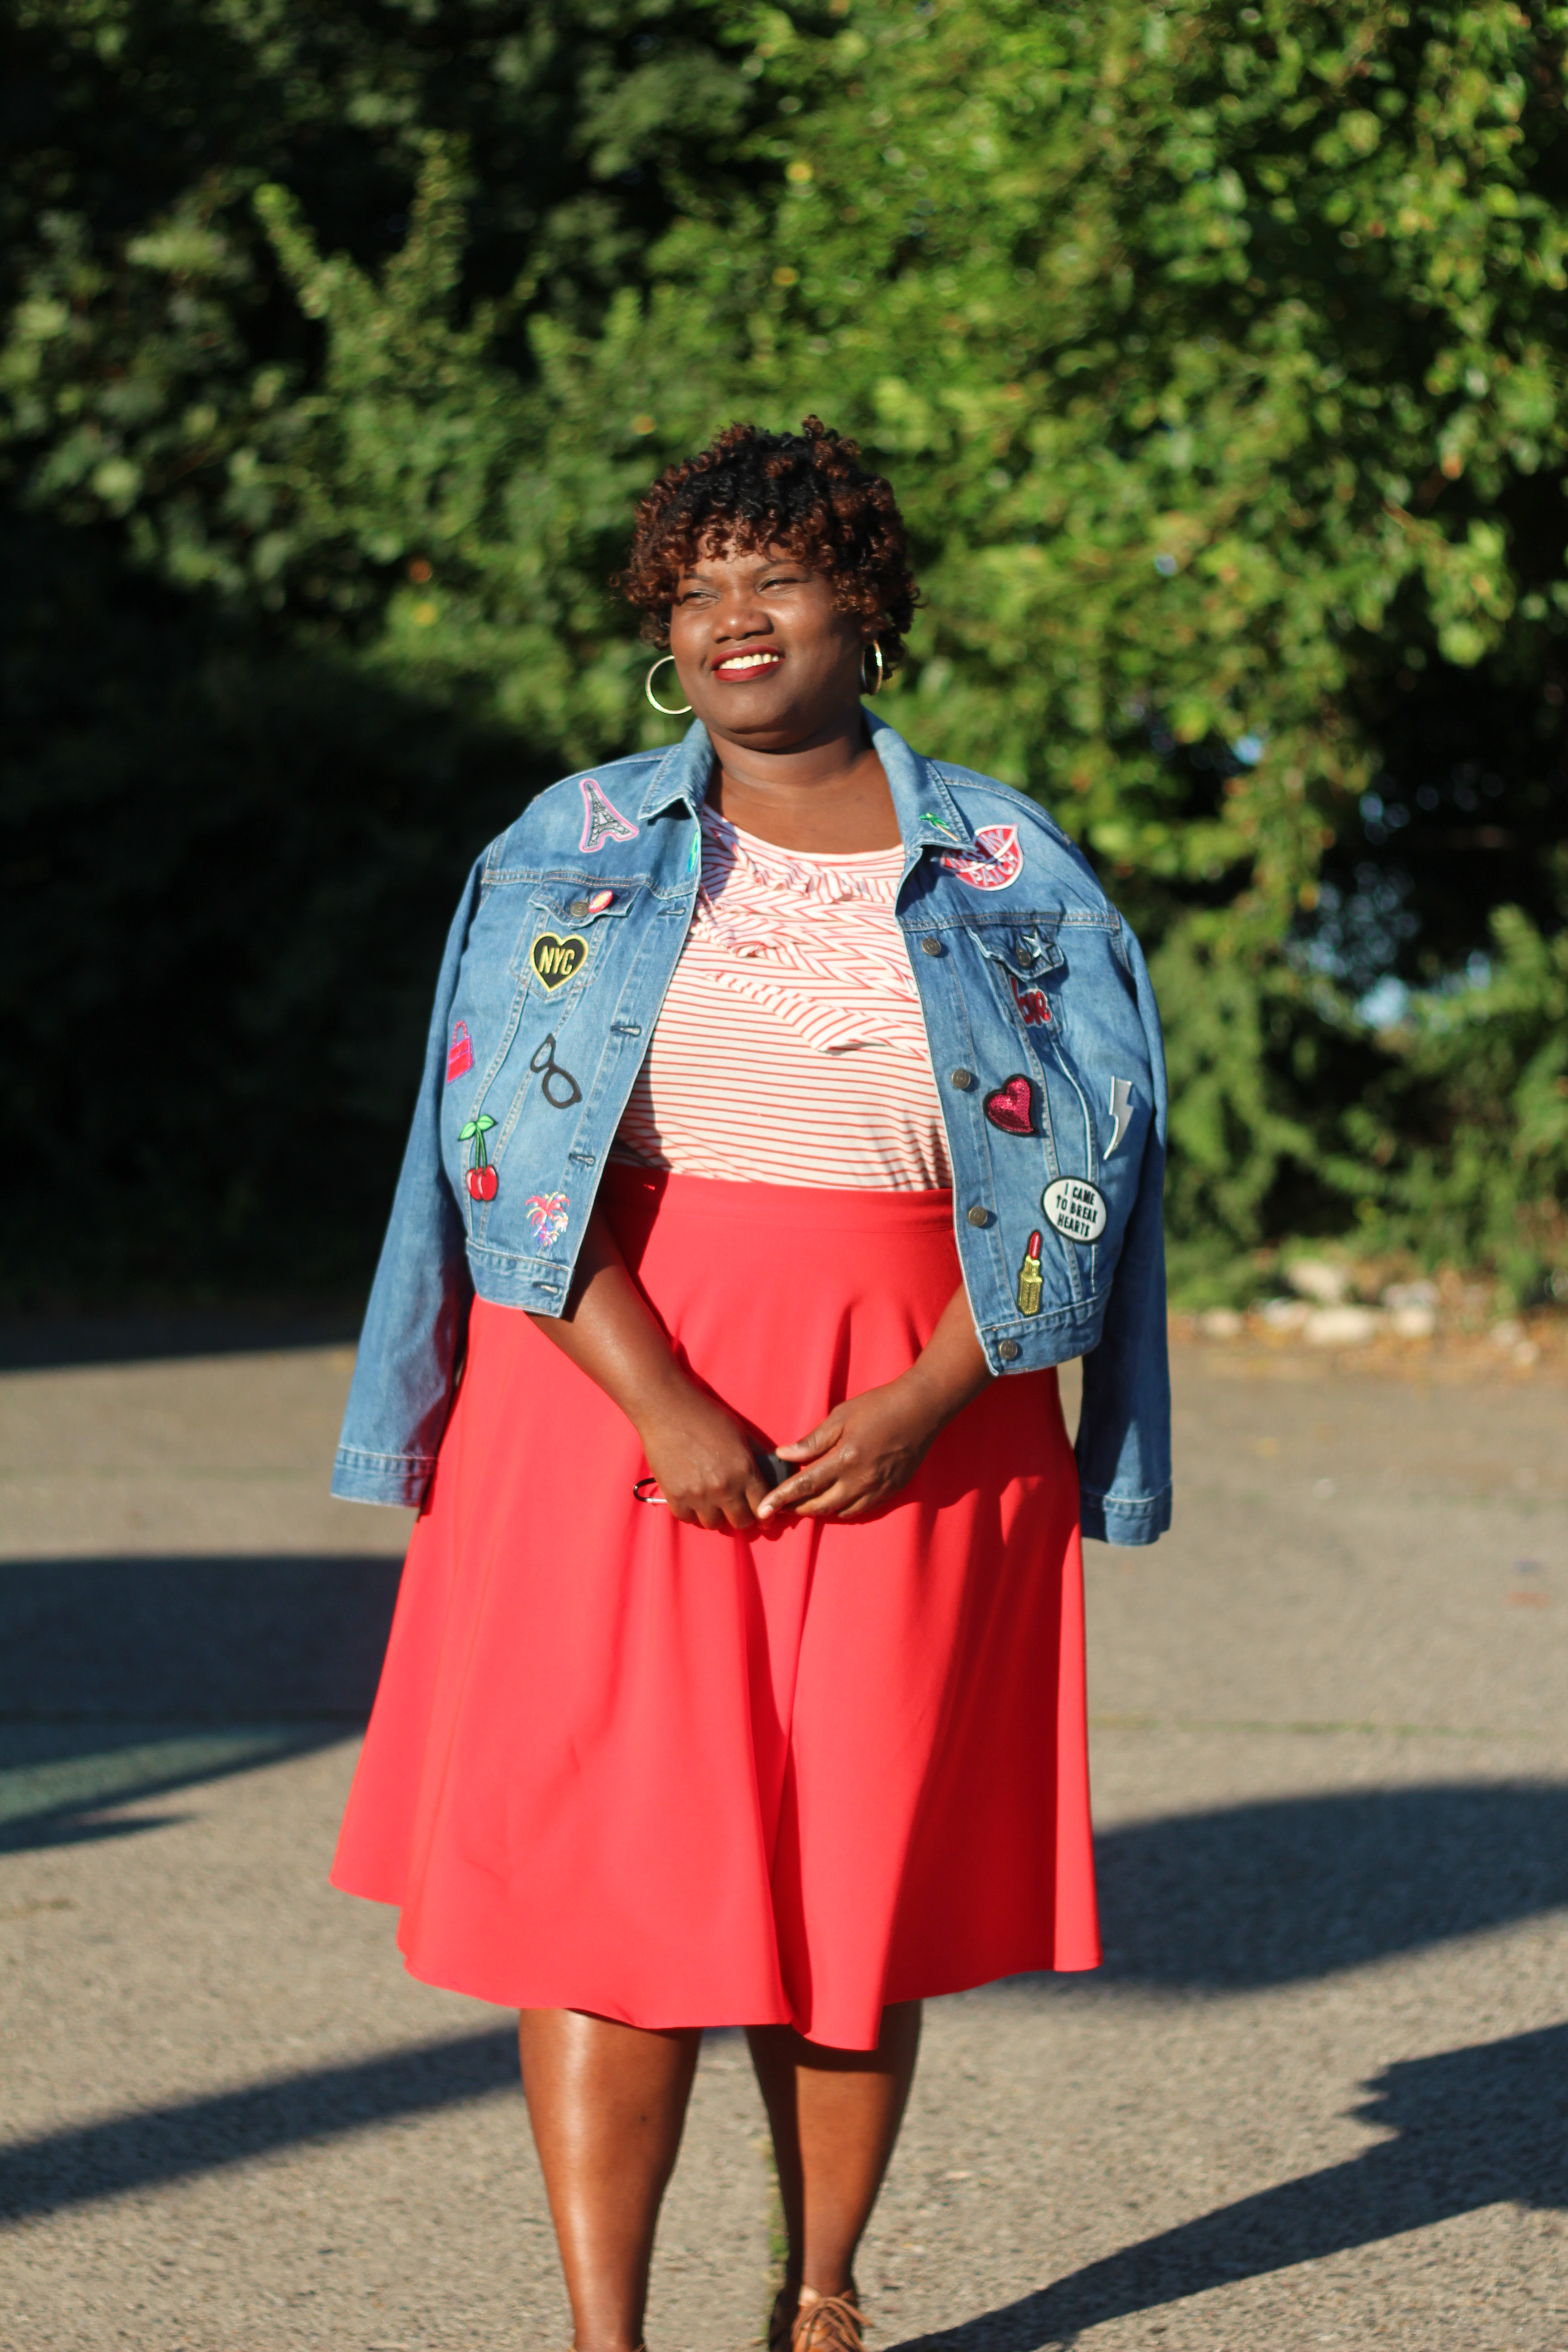 DIY, patch denim jacket, plus size denin jackets, denim jackets, fall, patches, curvy women, curvy girl,  curvy bloggers, curvy blog, blogs, fashion bloggers, fashion blog, plus size blogs, plus size bloggers, red, midi skirts, stripe shirt, stripes, stripe outfit, summer, late summer